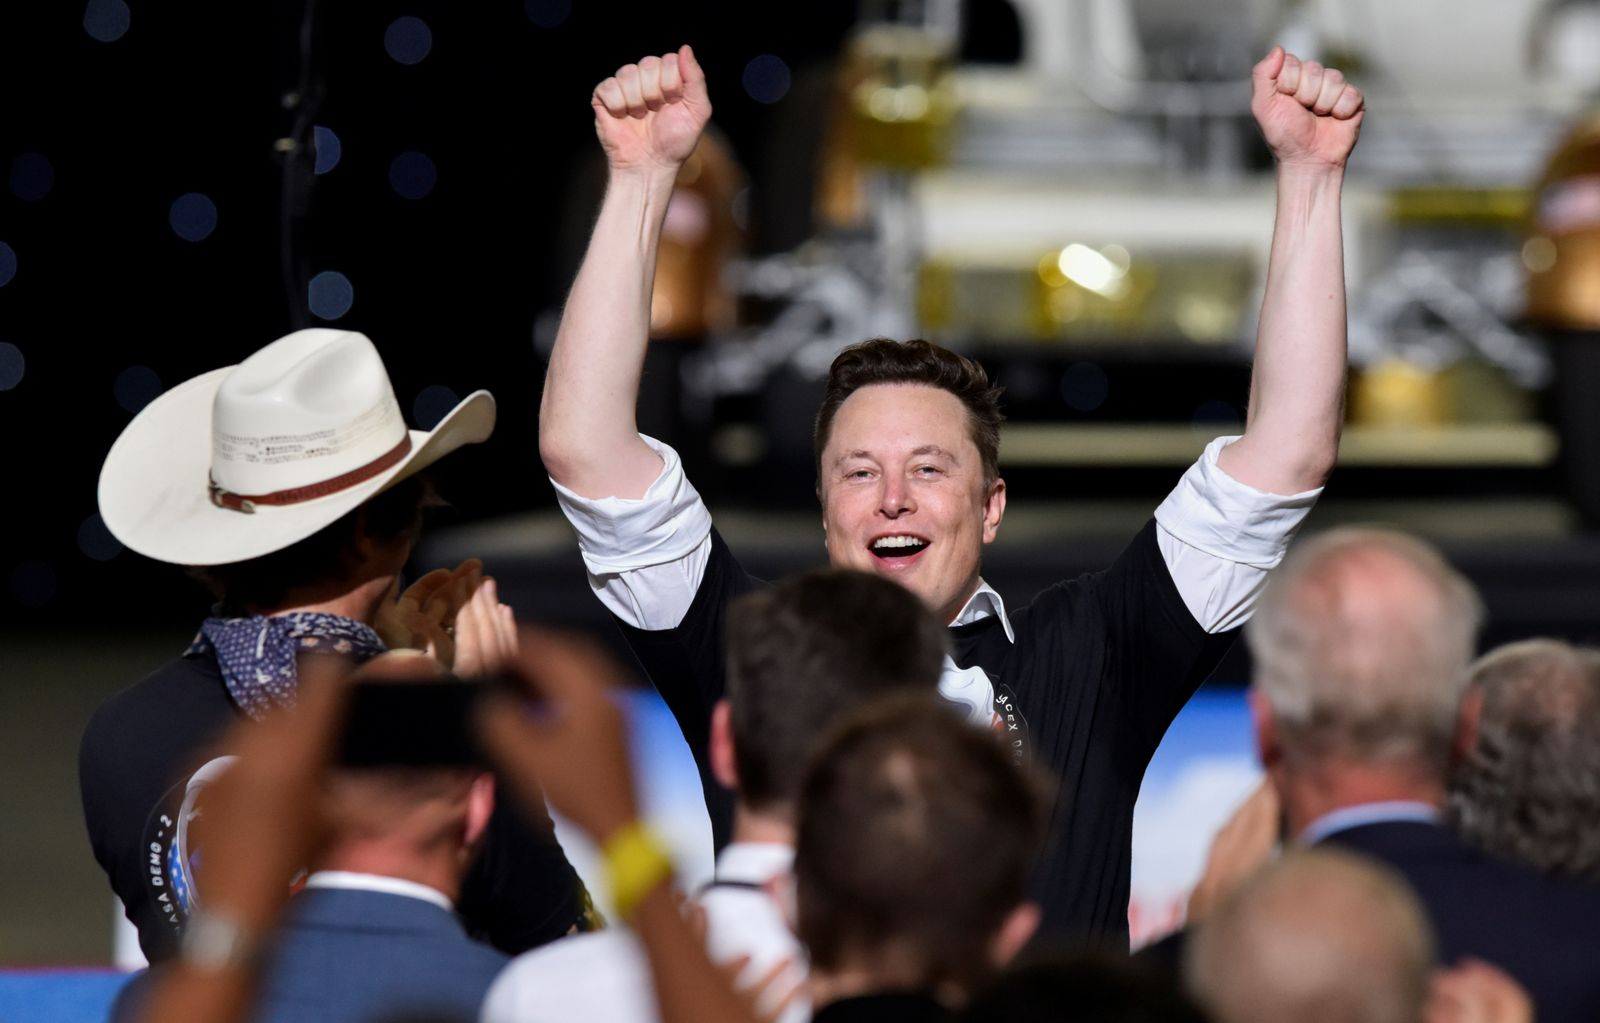 SpaceX CEO Elon Musk celebrates after the launch of a SpaceX Falcon 9 rocket and Crew Dragon spacecraft on NASA's SpaceX Demo-2 mission to the International Space Station from NASA's Kennedy Space Center in Cape Canaveral